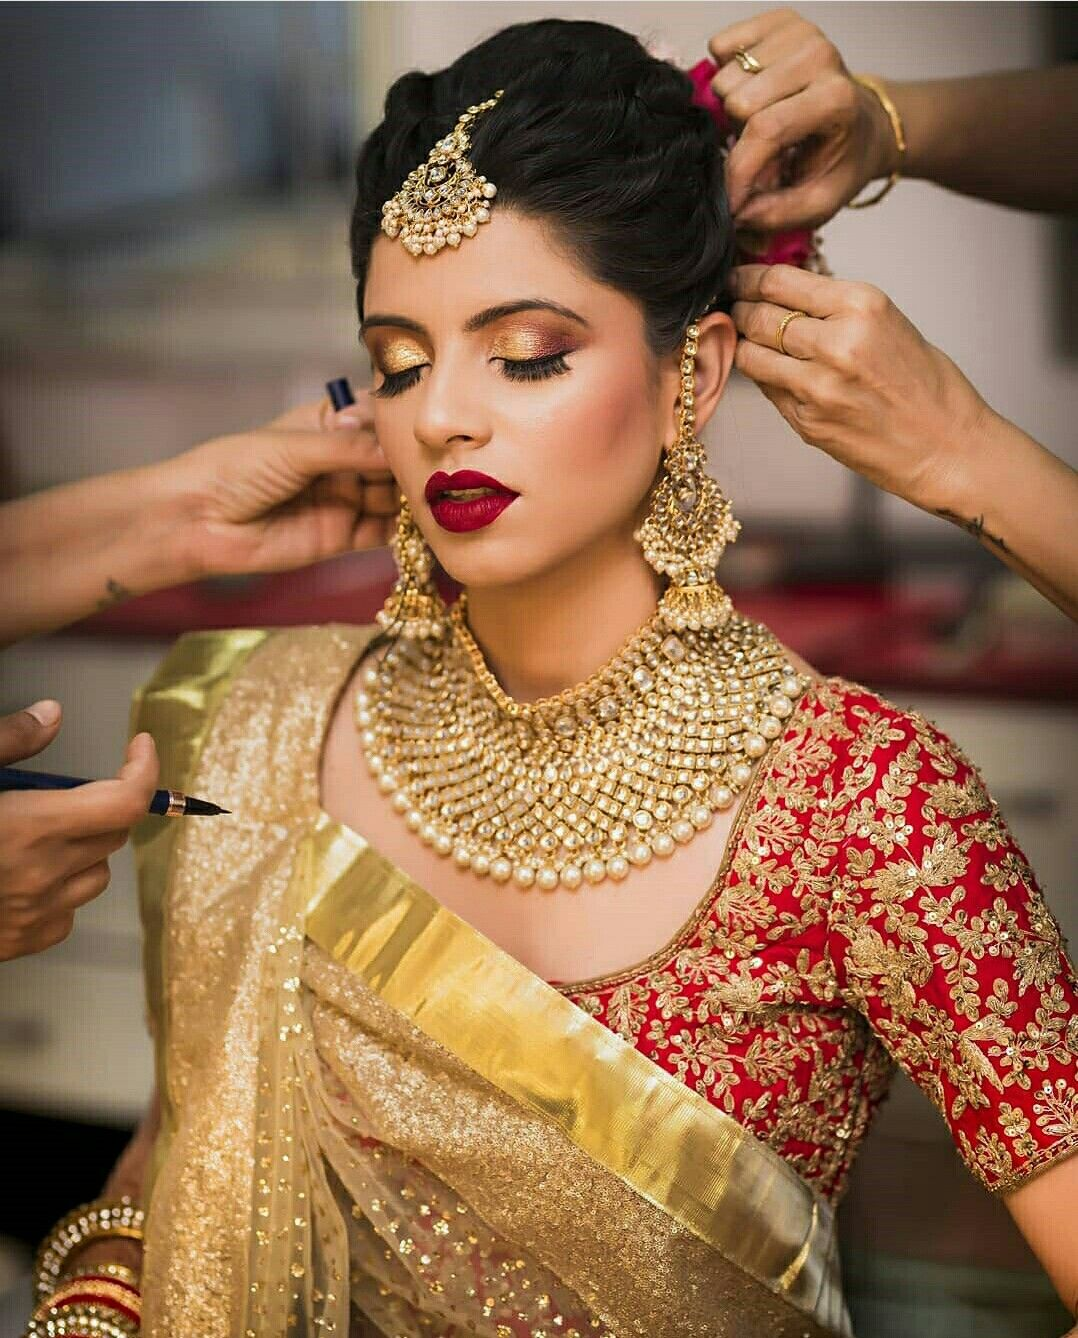 Pin by Ana Sanchez on aBridal photography   Indian bride makeup ...